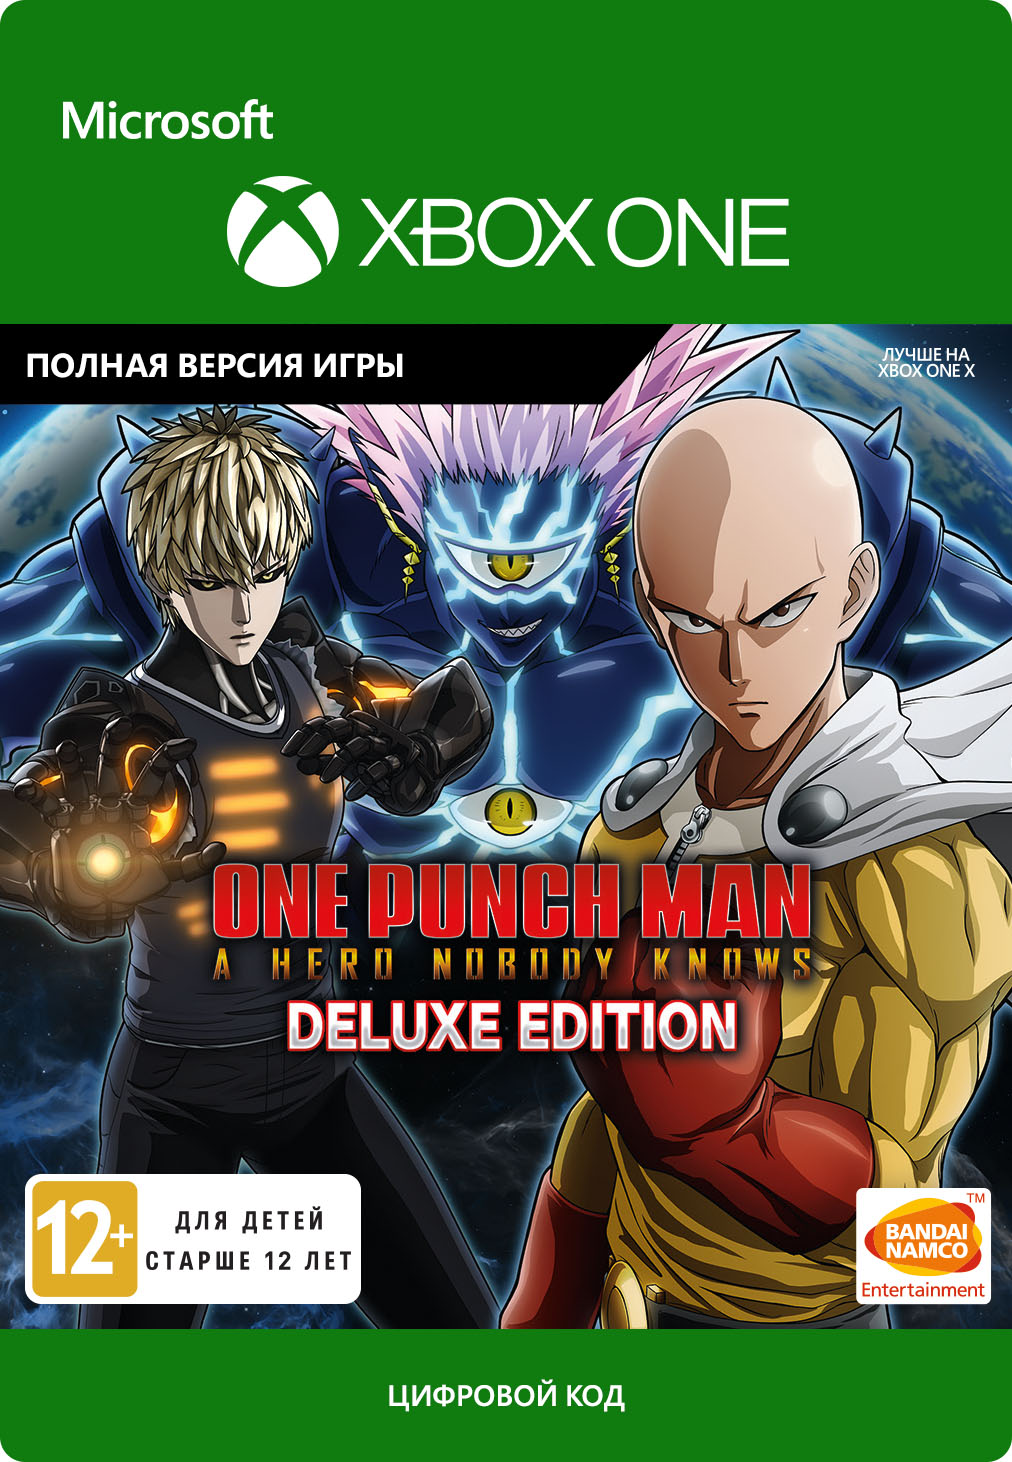 One Punch Man: A Hero Nobody Knows. Deluxe Edition [Xbox One, Цифровая версия] (Цифровая версия)